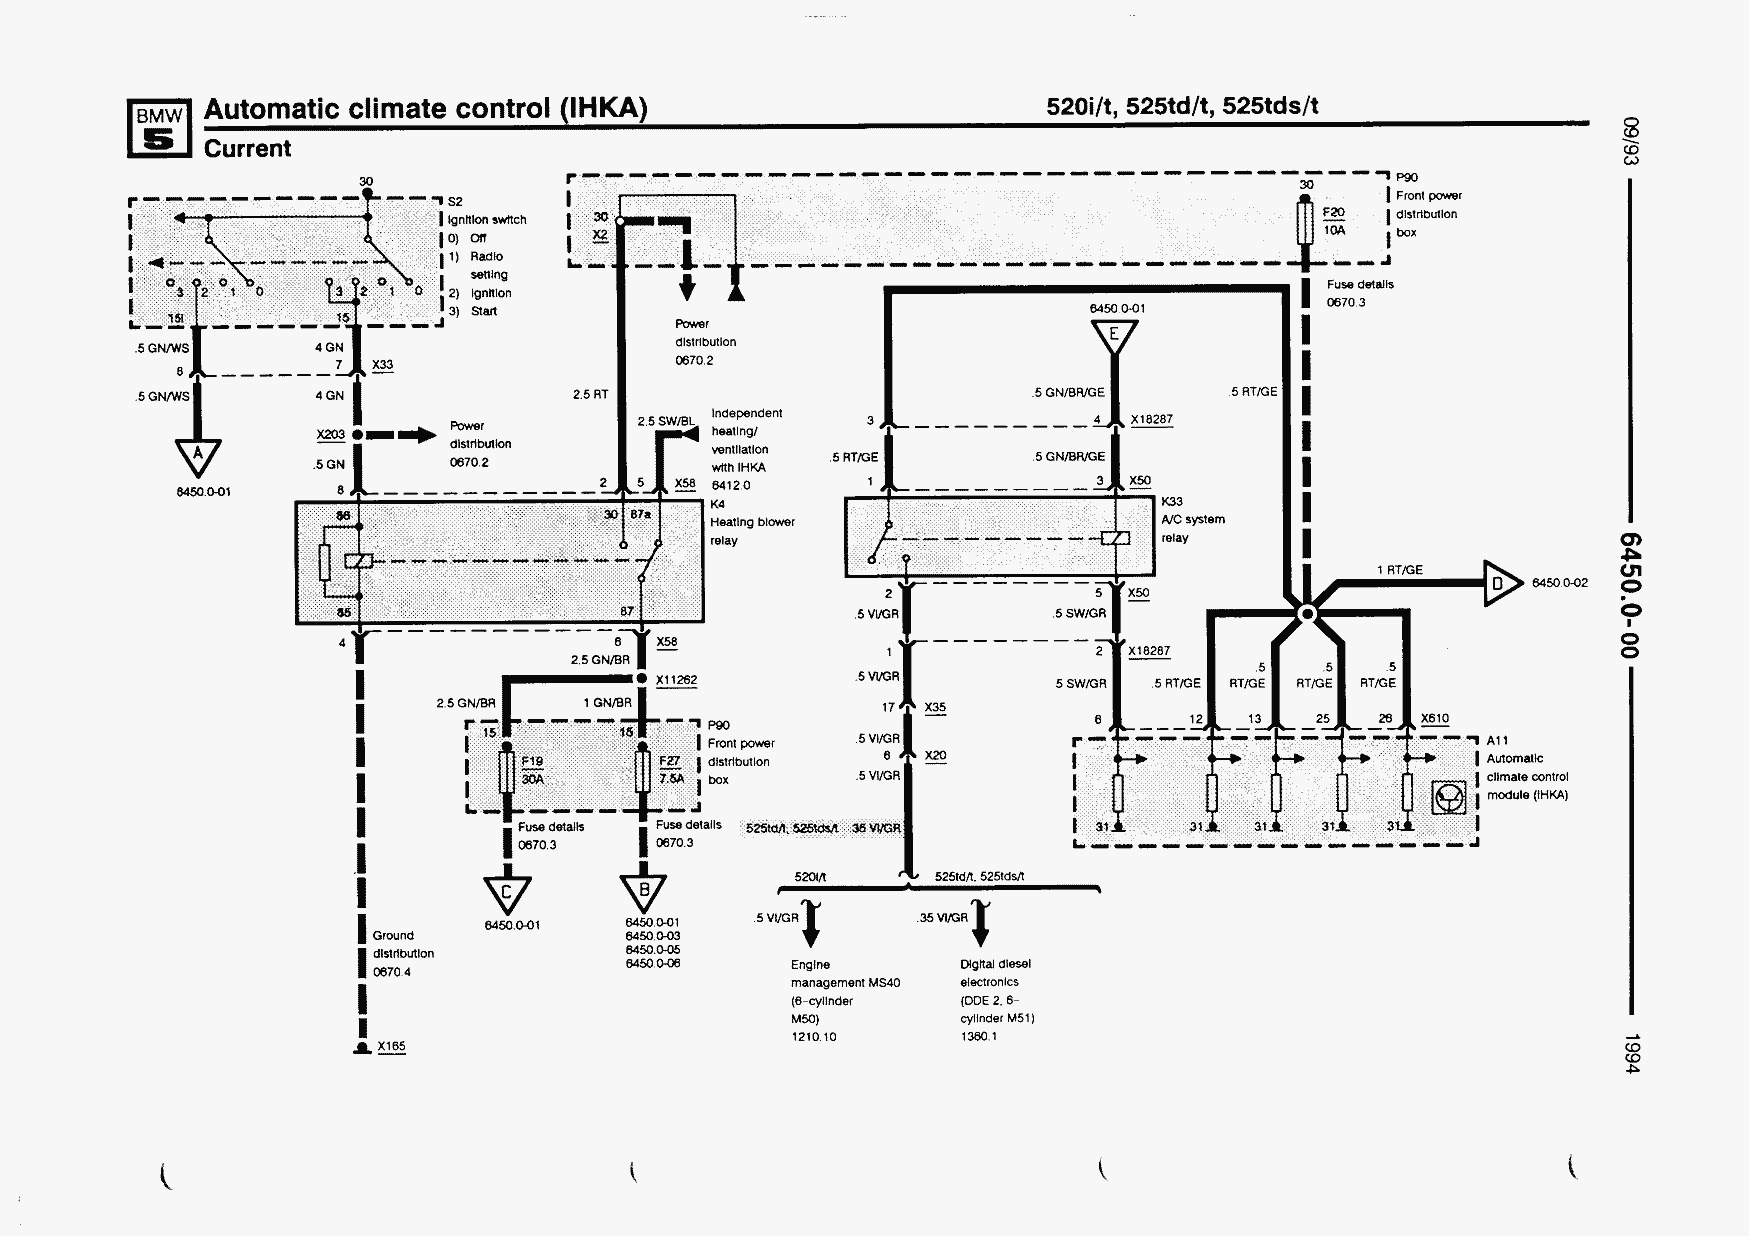 00 bmw 525 tds wiring diagram bmw wiring diagrams instruction bmw e34 wiring diagram at mifinder.co